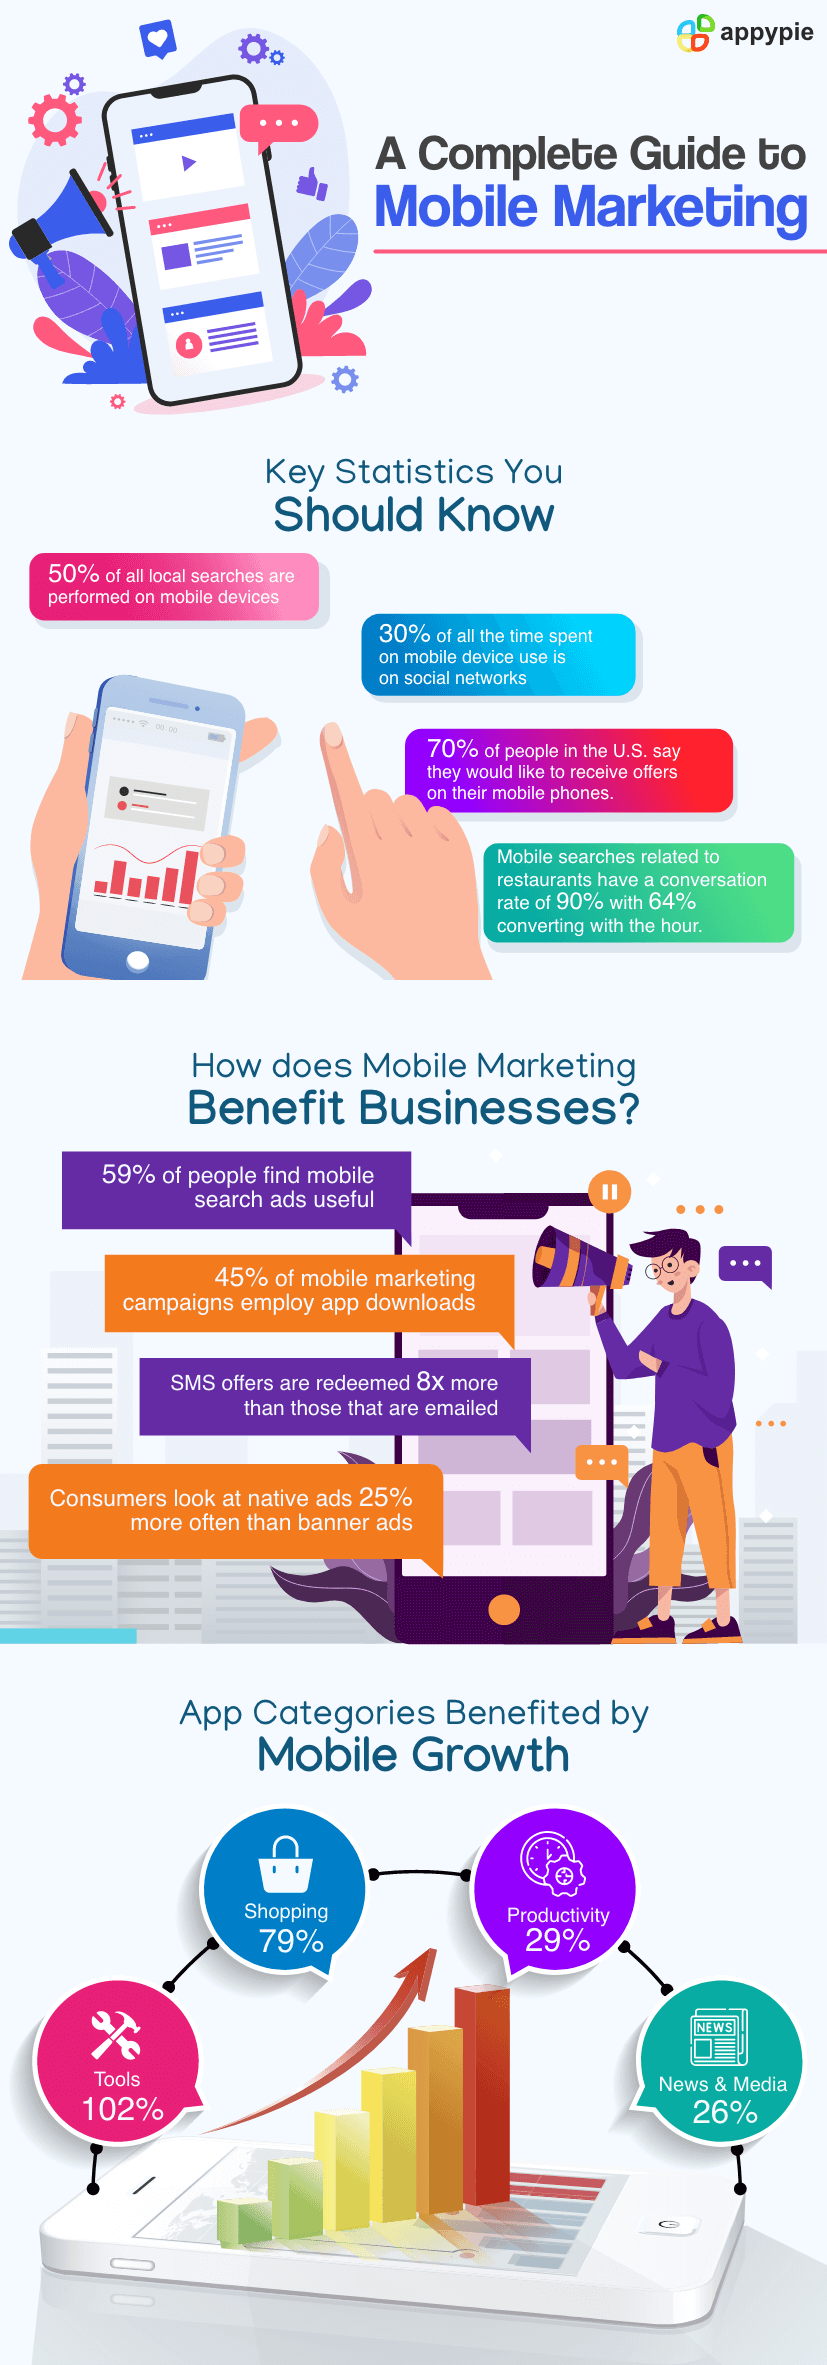 A Complete Guide to Mobile Marketing - Appy Pie